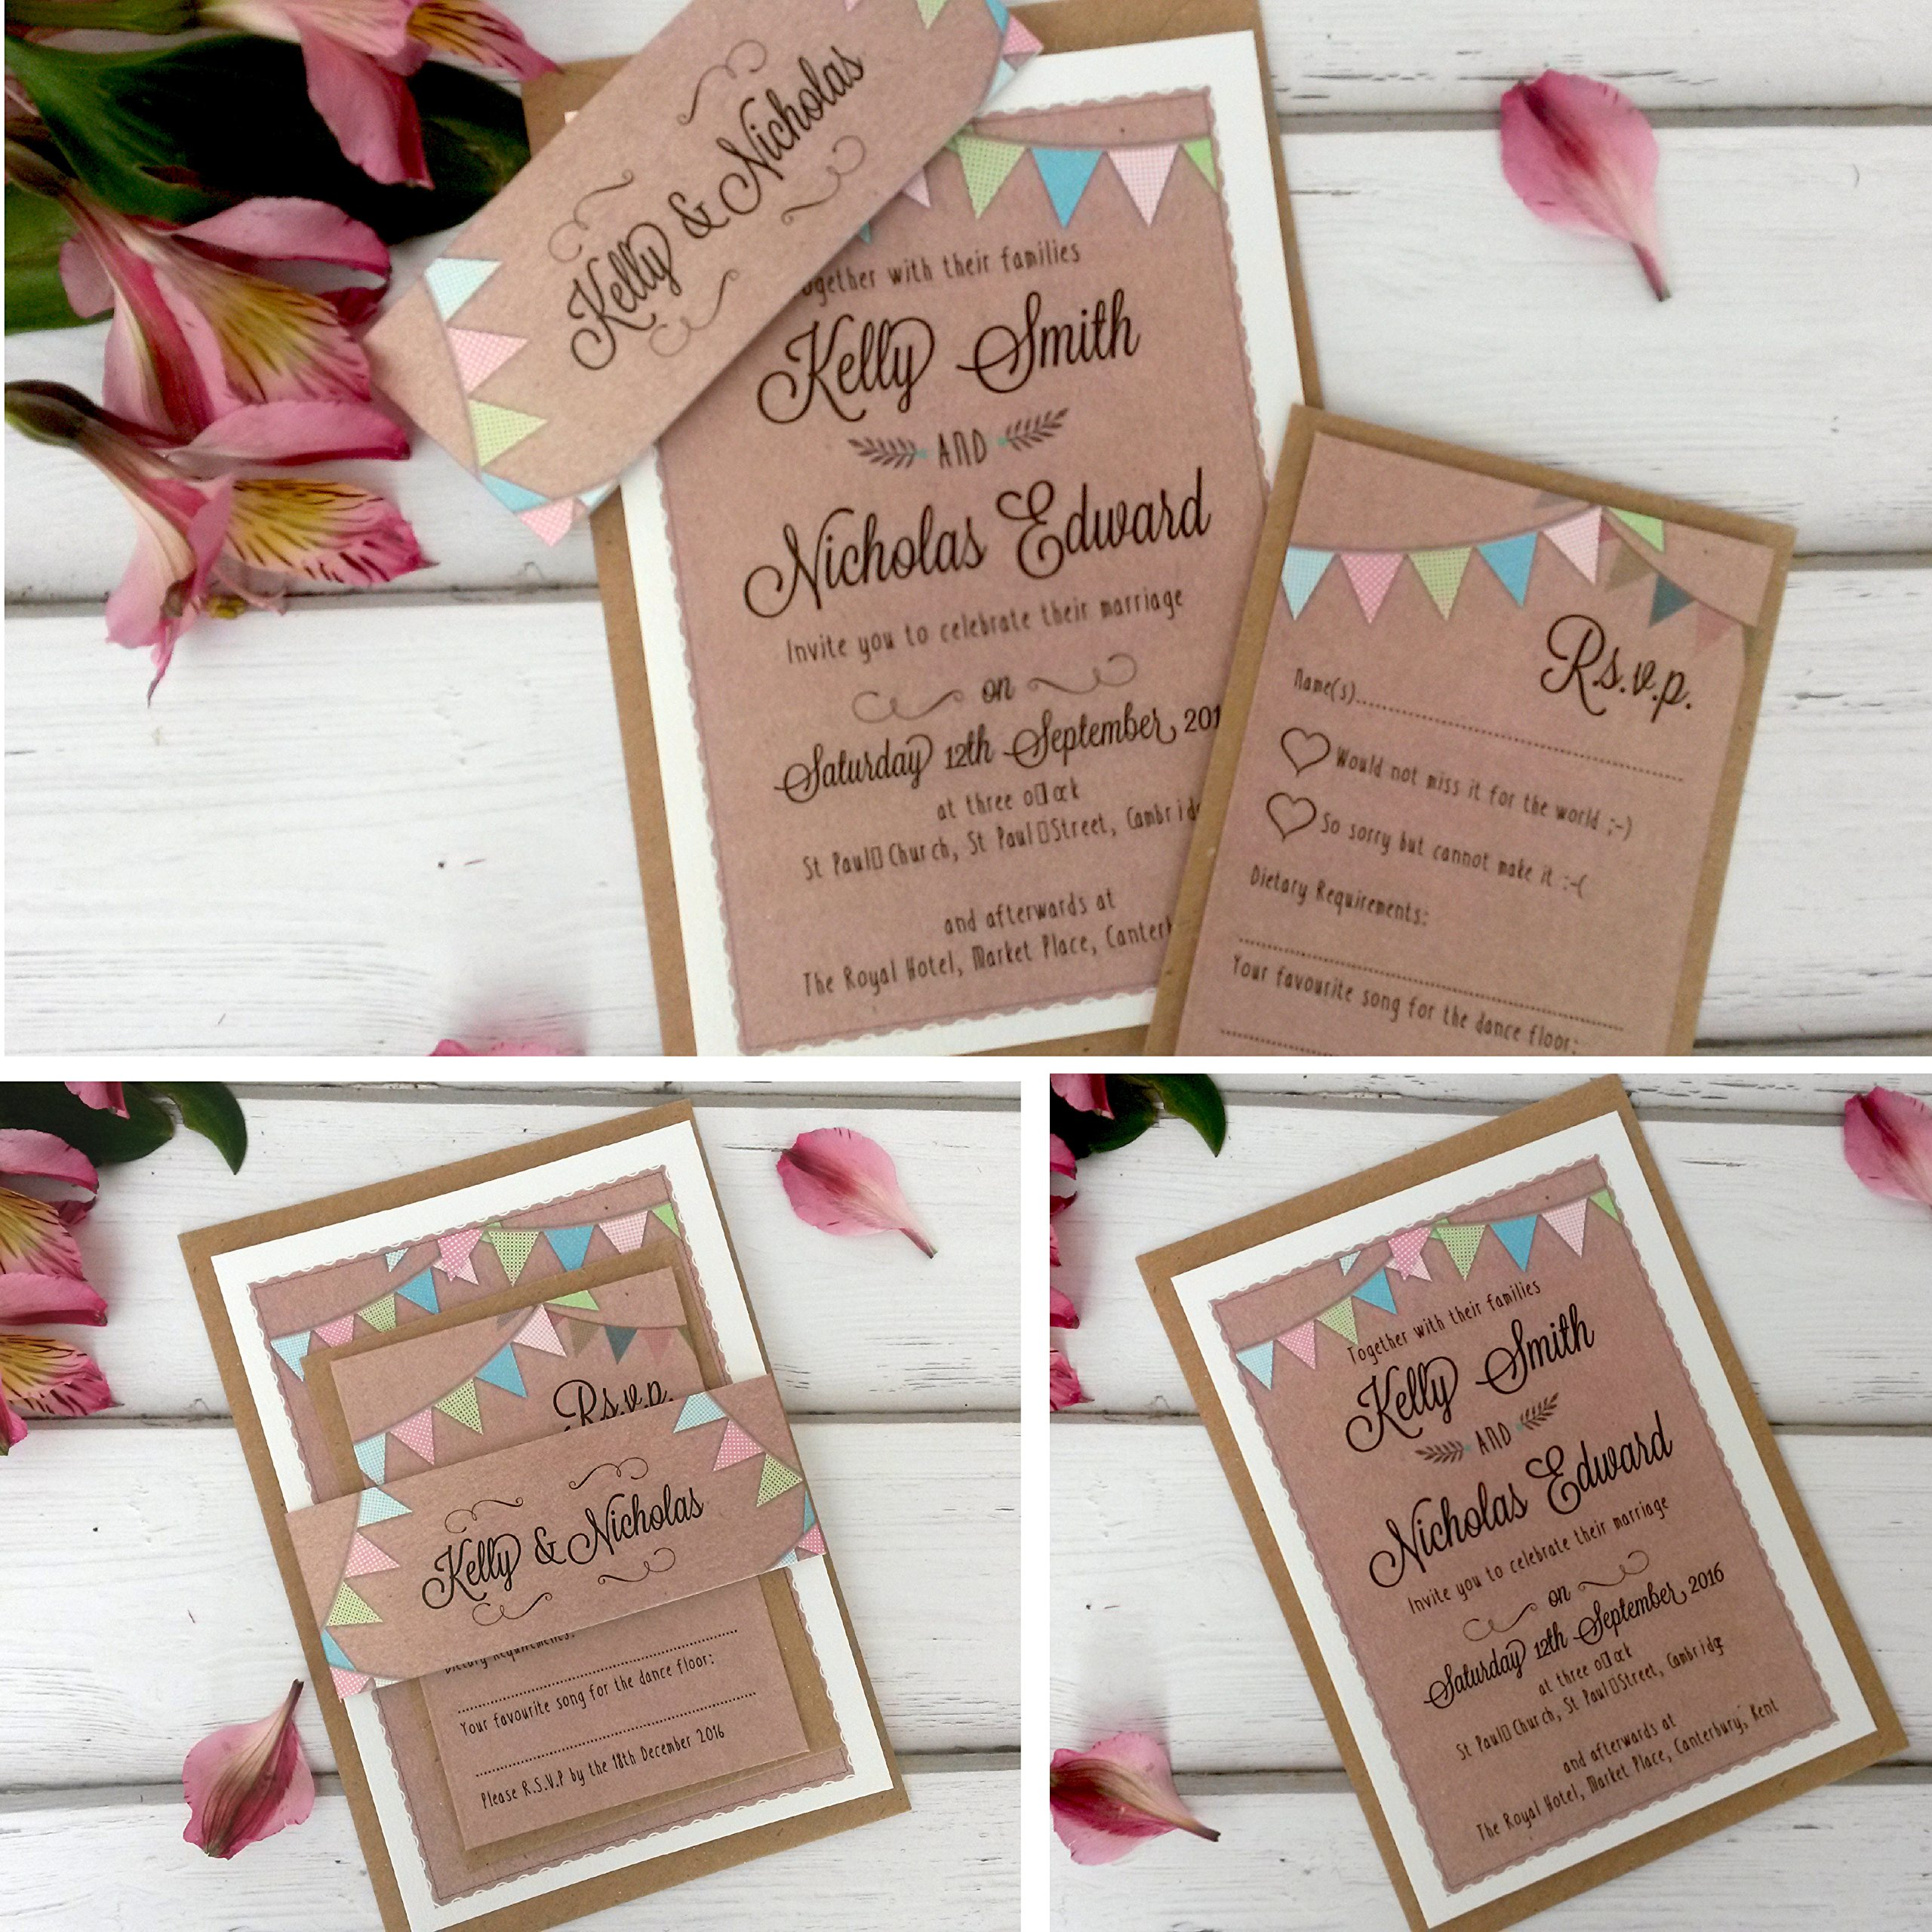 Diy wedding invitations amazon personalised wedding invitations with rsvp card sleeve envelopes handmade kraft bunting junglespirit Gallery